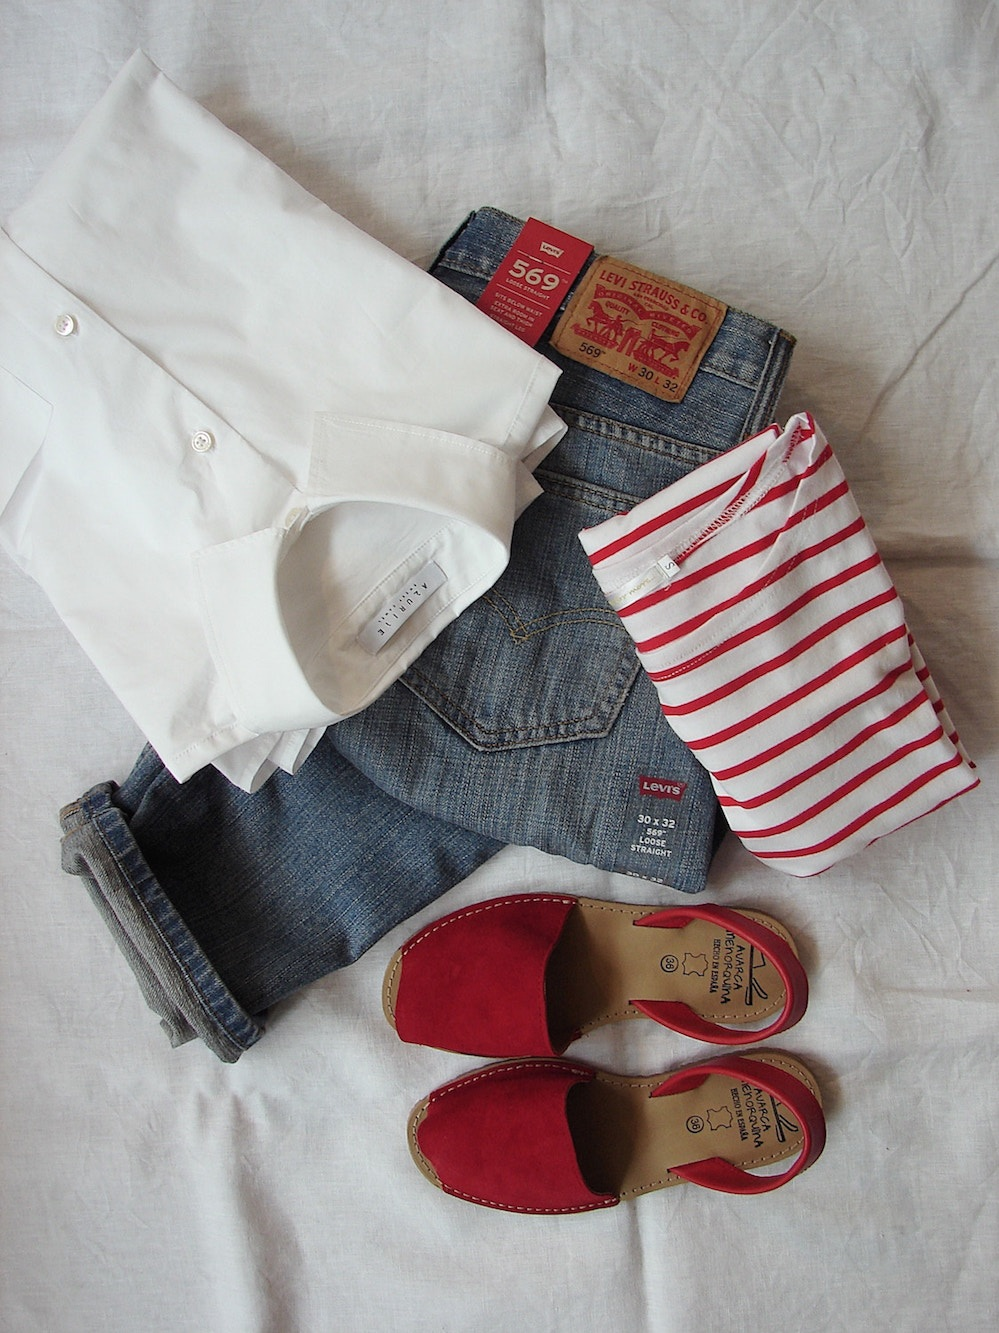 White shirt, blue jeans, red sandals, striped red shirt, fourth of july outfit